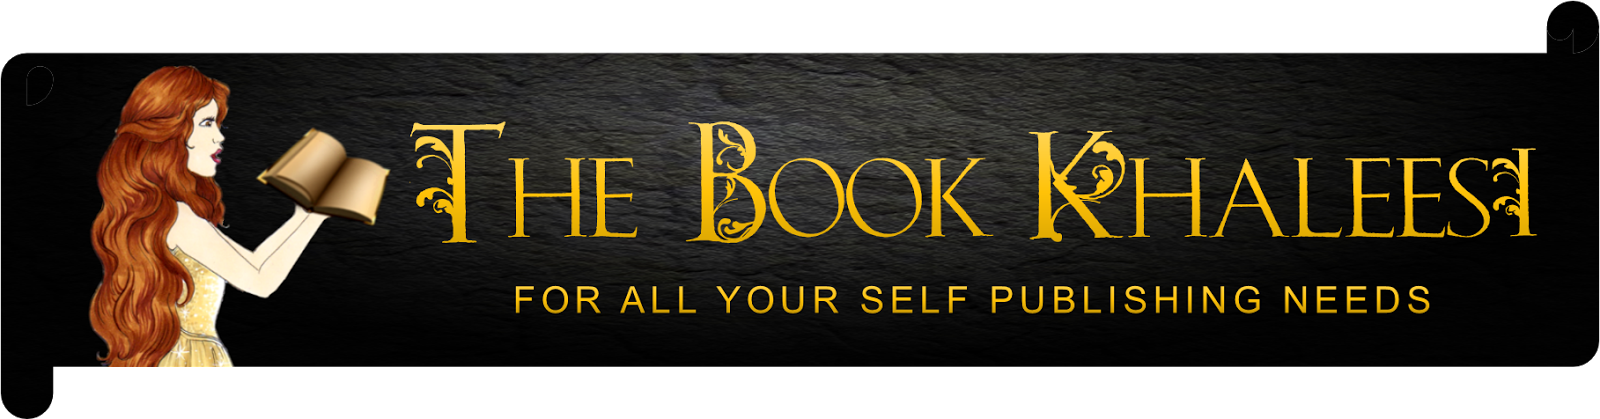 The Book Khaleesi - Self Publishing Solutions